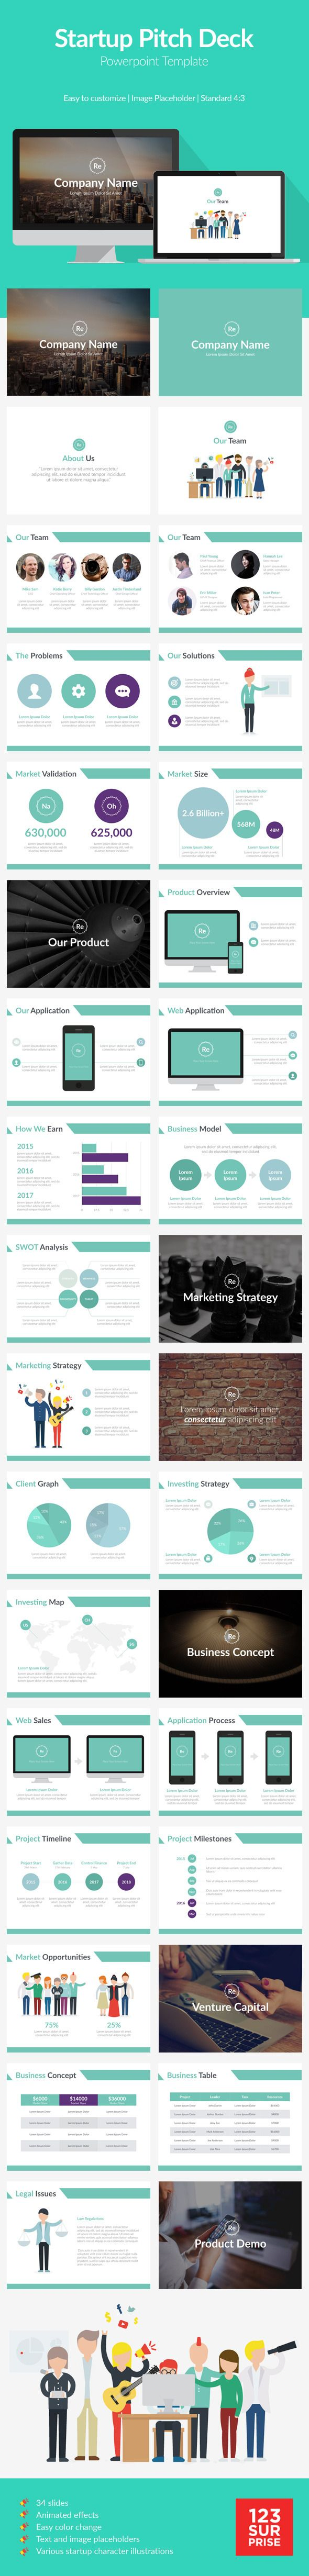 Startup Pitch Deck Template - Pitch Deck #PowerPoint #Templates Download here: https://graphicriver.net/item/startup-pitch-deck-template/12882233?ref=Suz_562geid